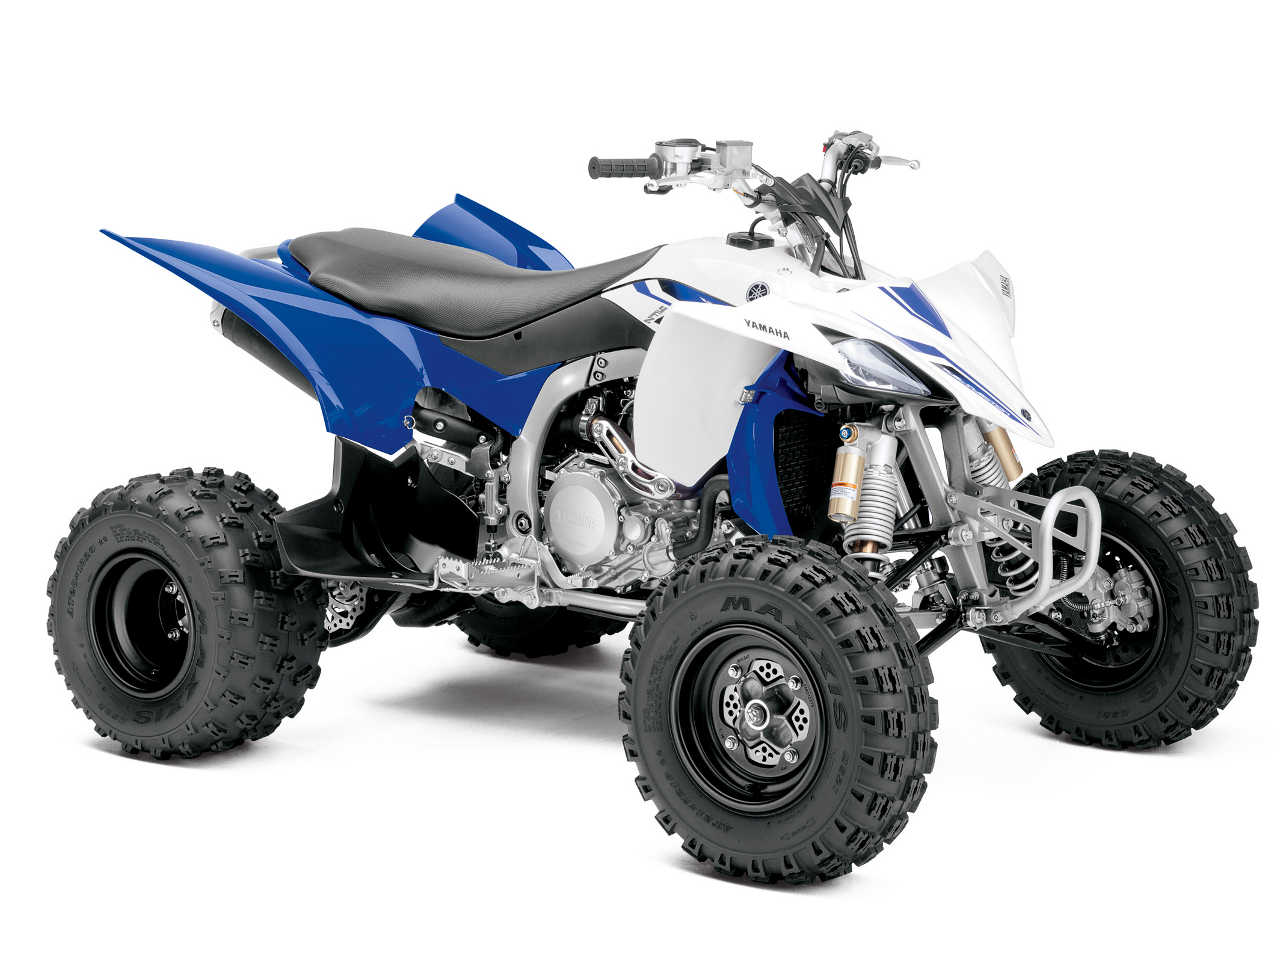 yamaha s 2014 yfz450r now assembled in usa atv illustrated